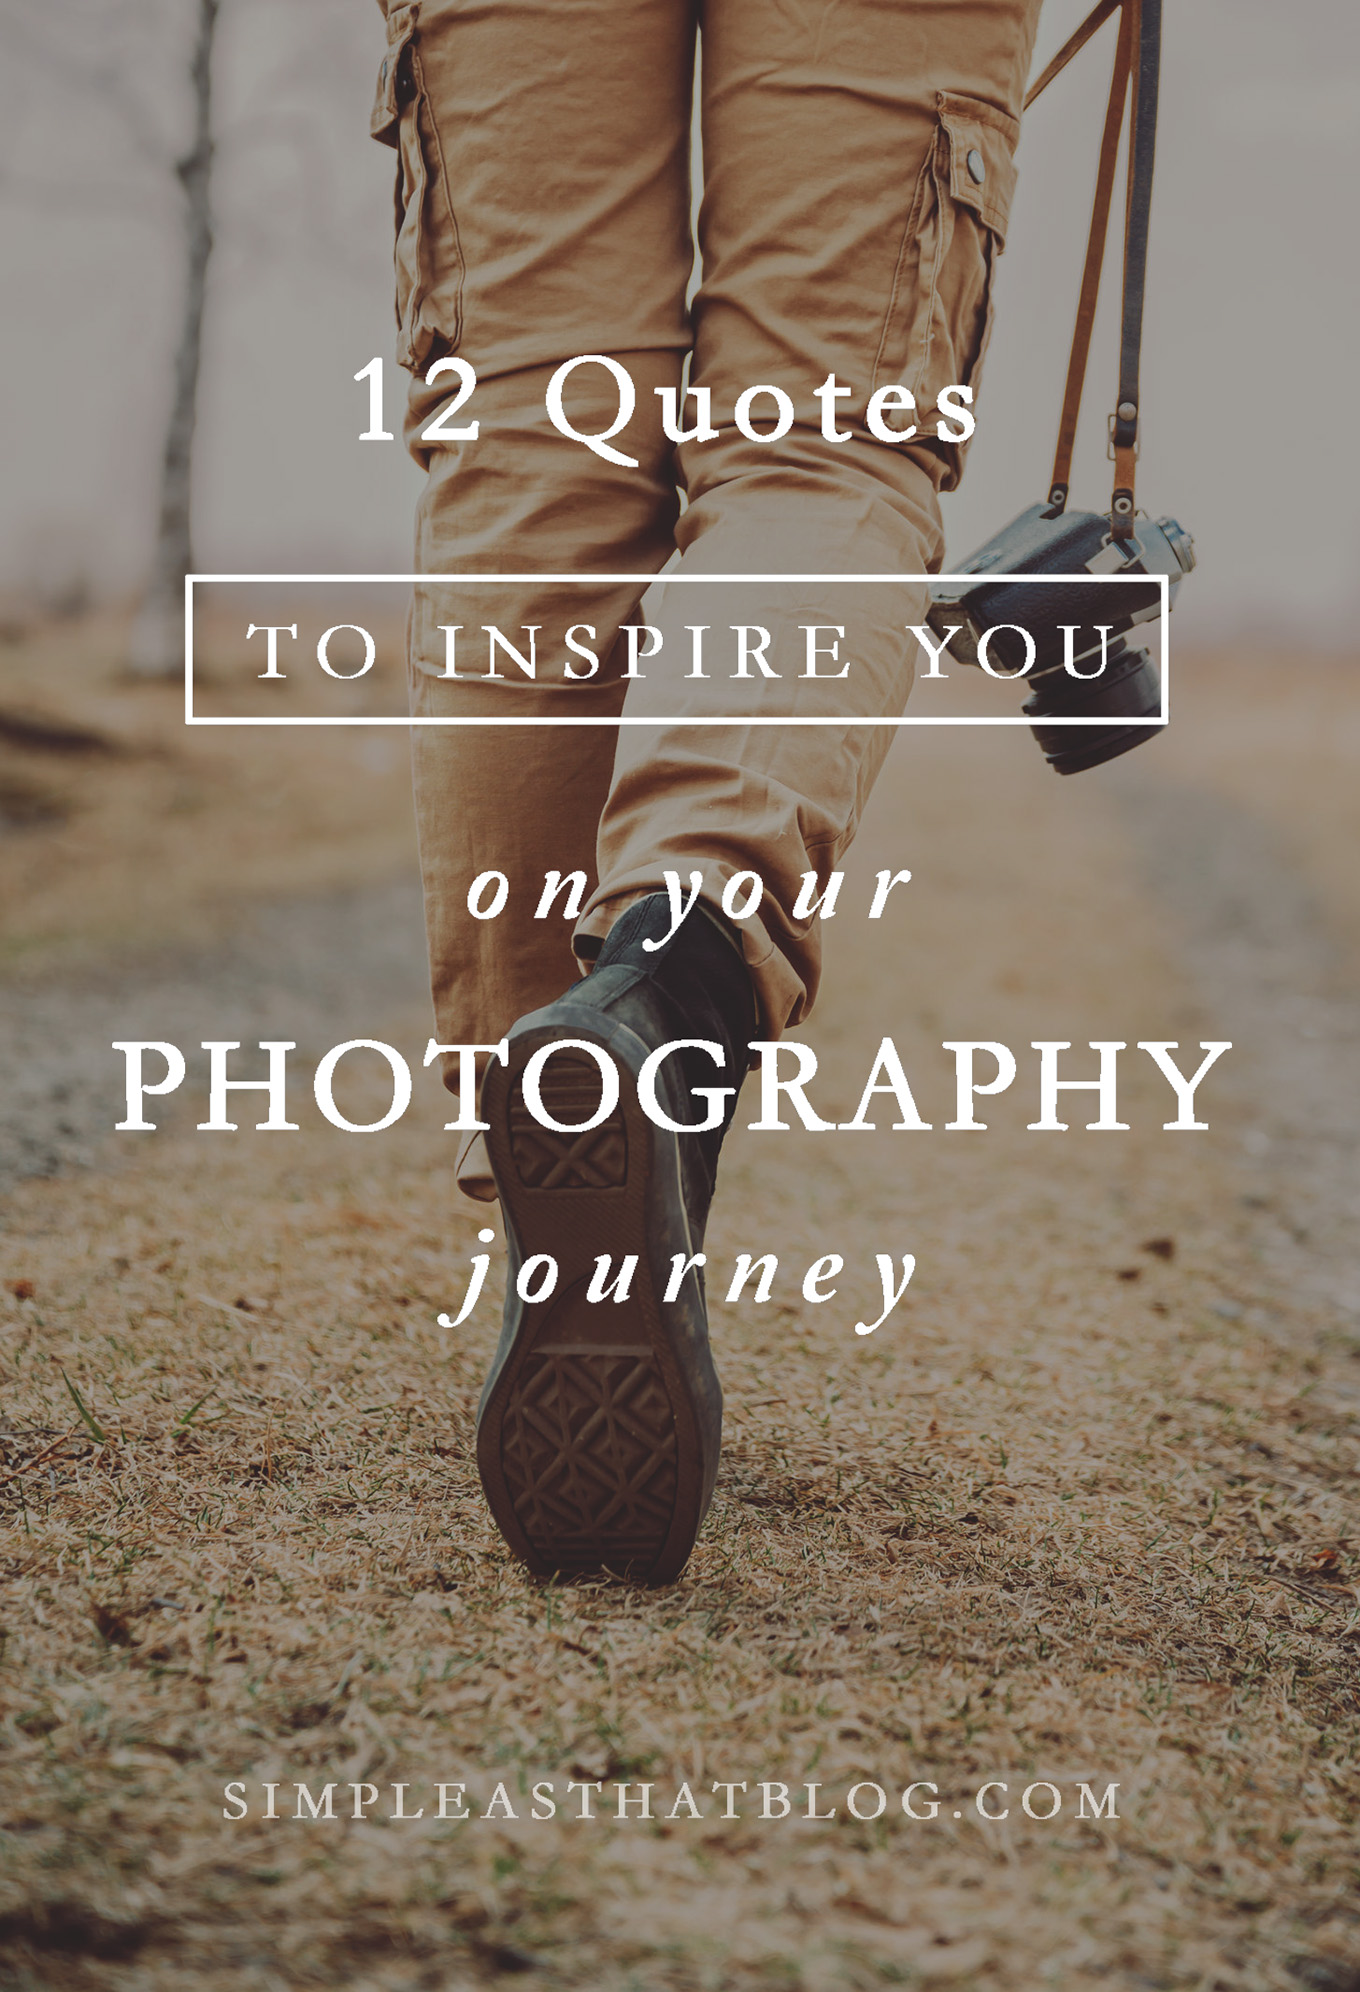 Quotes Life Journey 12 Quotes Inspire Photography Journey